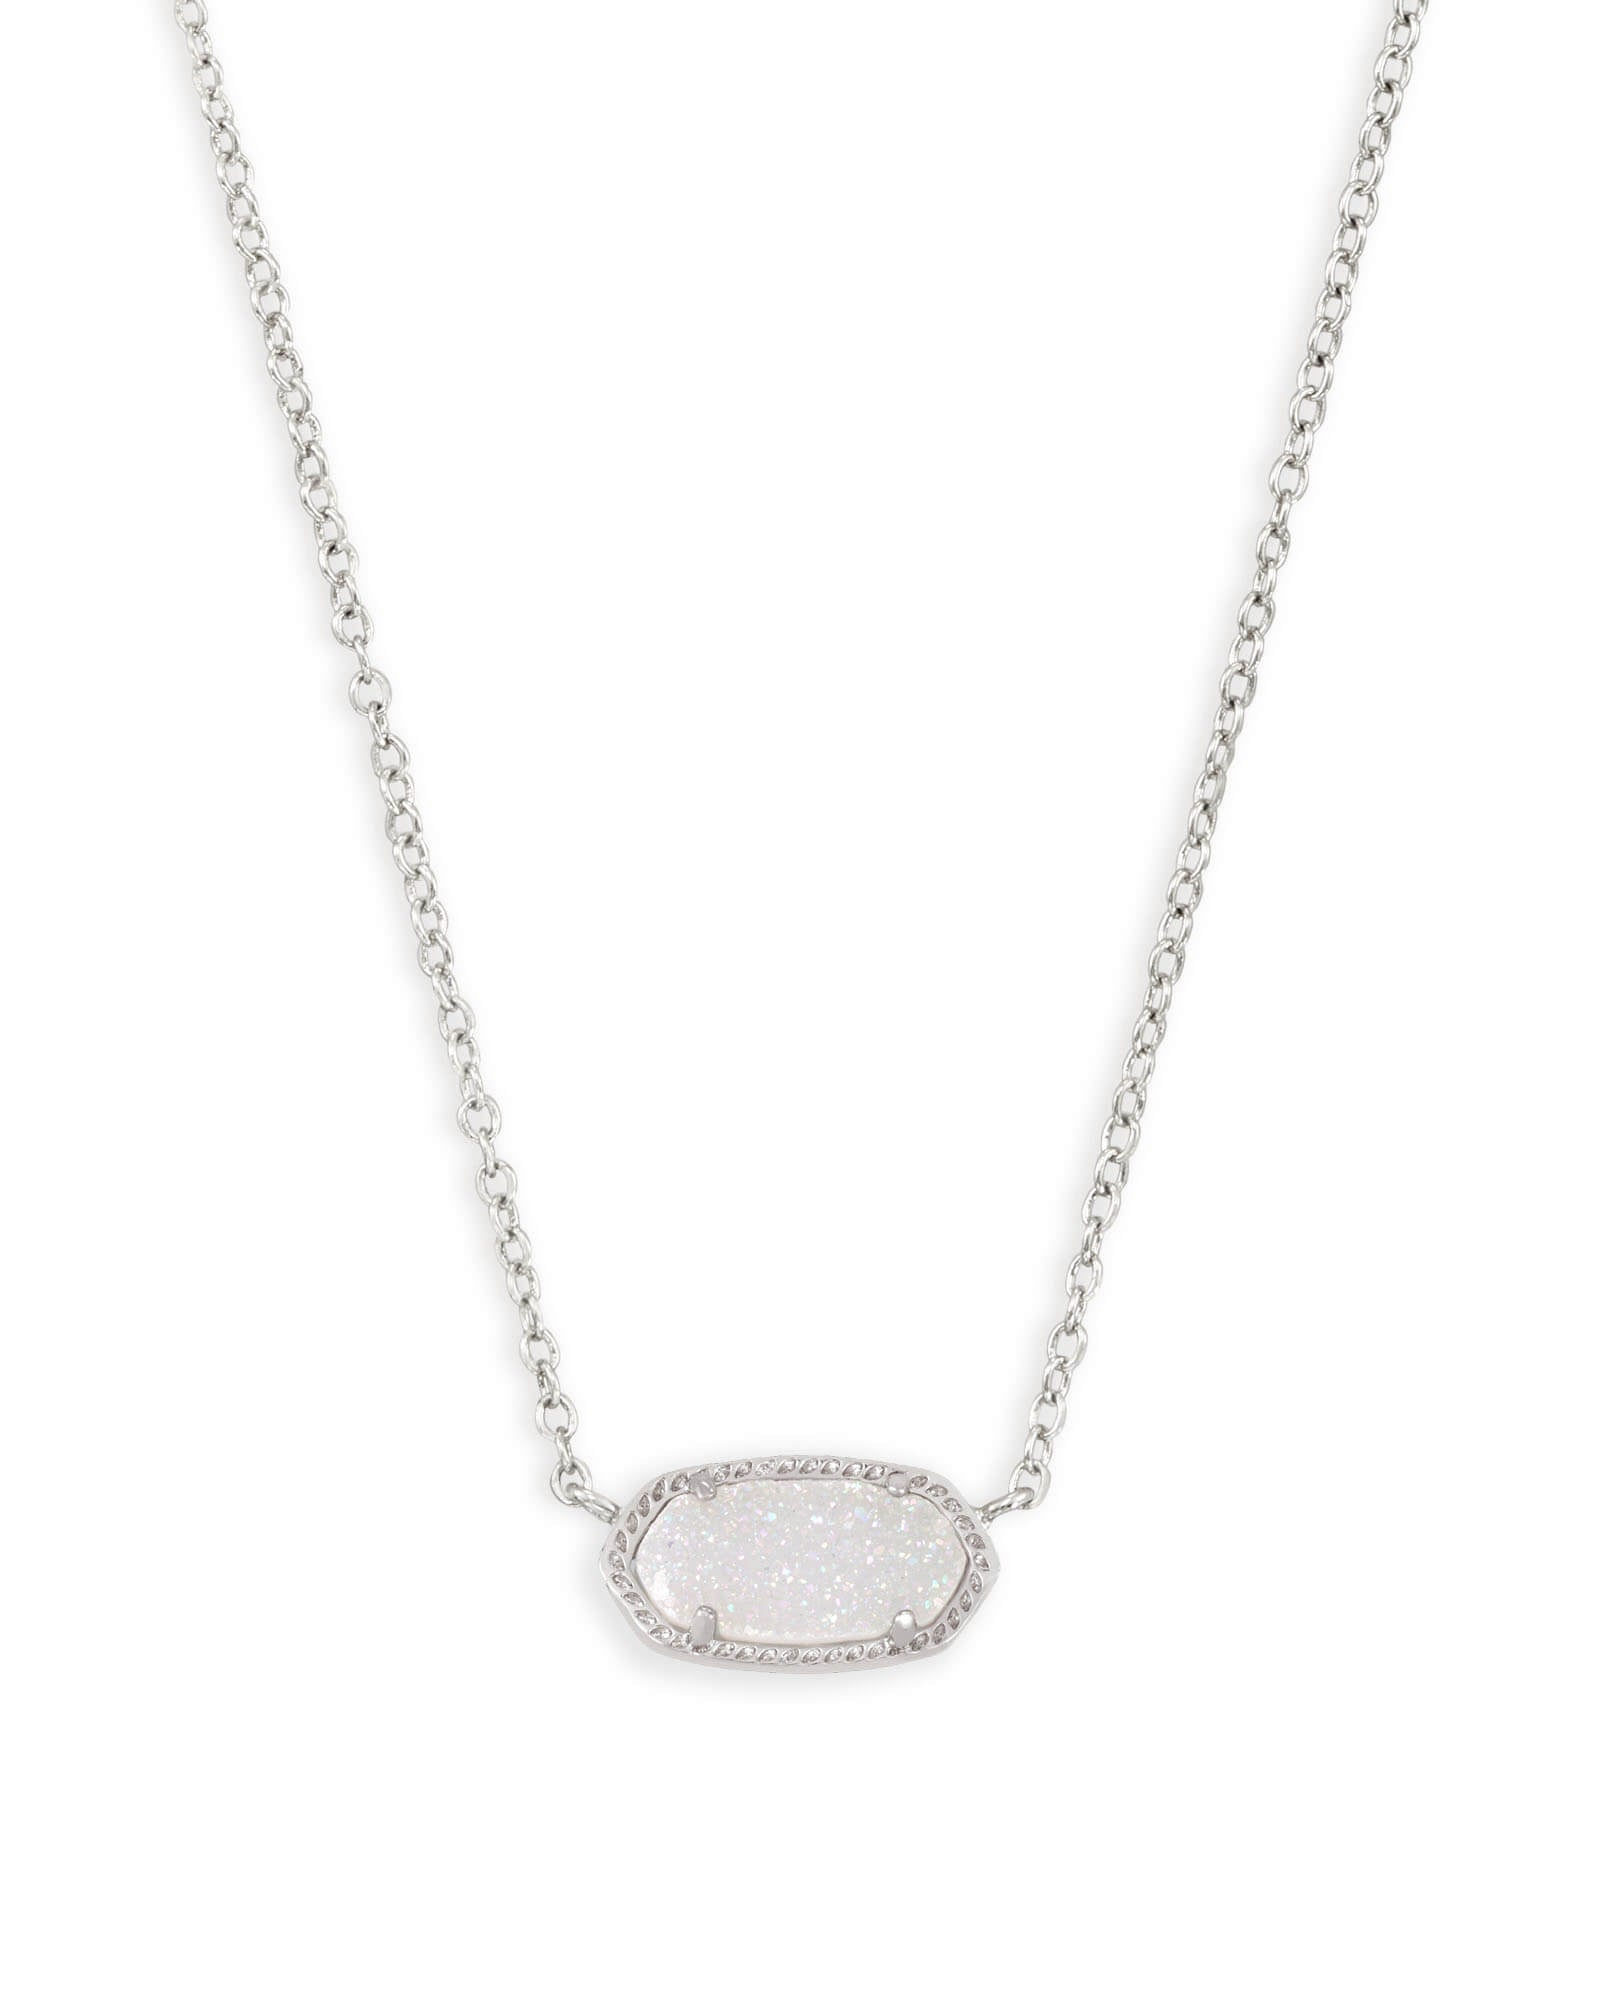 Kendra Scott Elisa Necklace Rhodium in Iridescent Drusy - Gabrielle's Biloxi